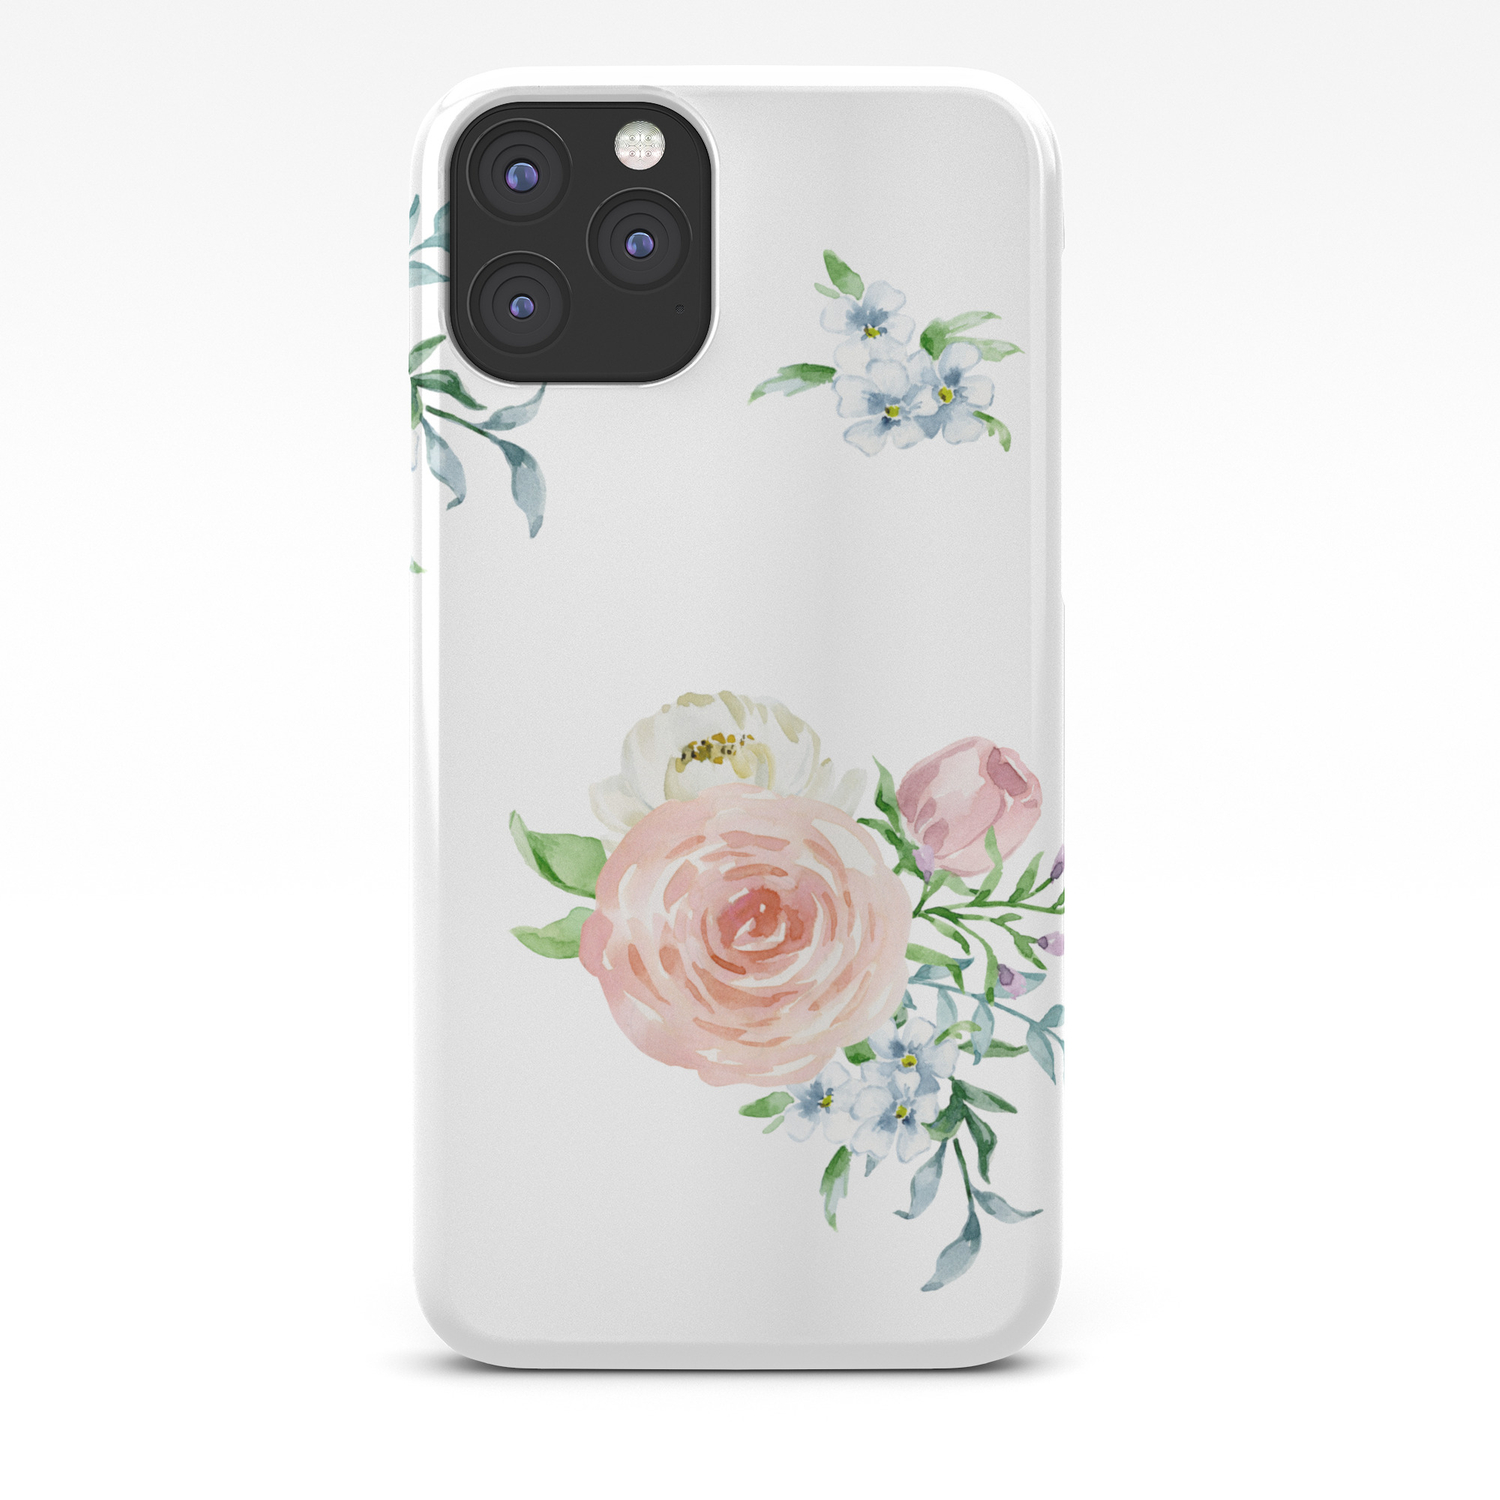 Watercolor Floral Background Pastel Colors Iphone Case By Jkdizajn